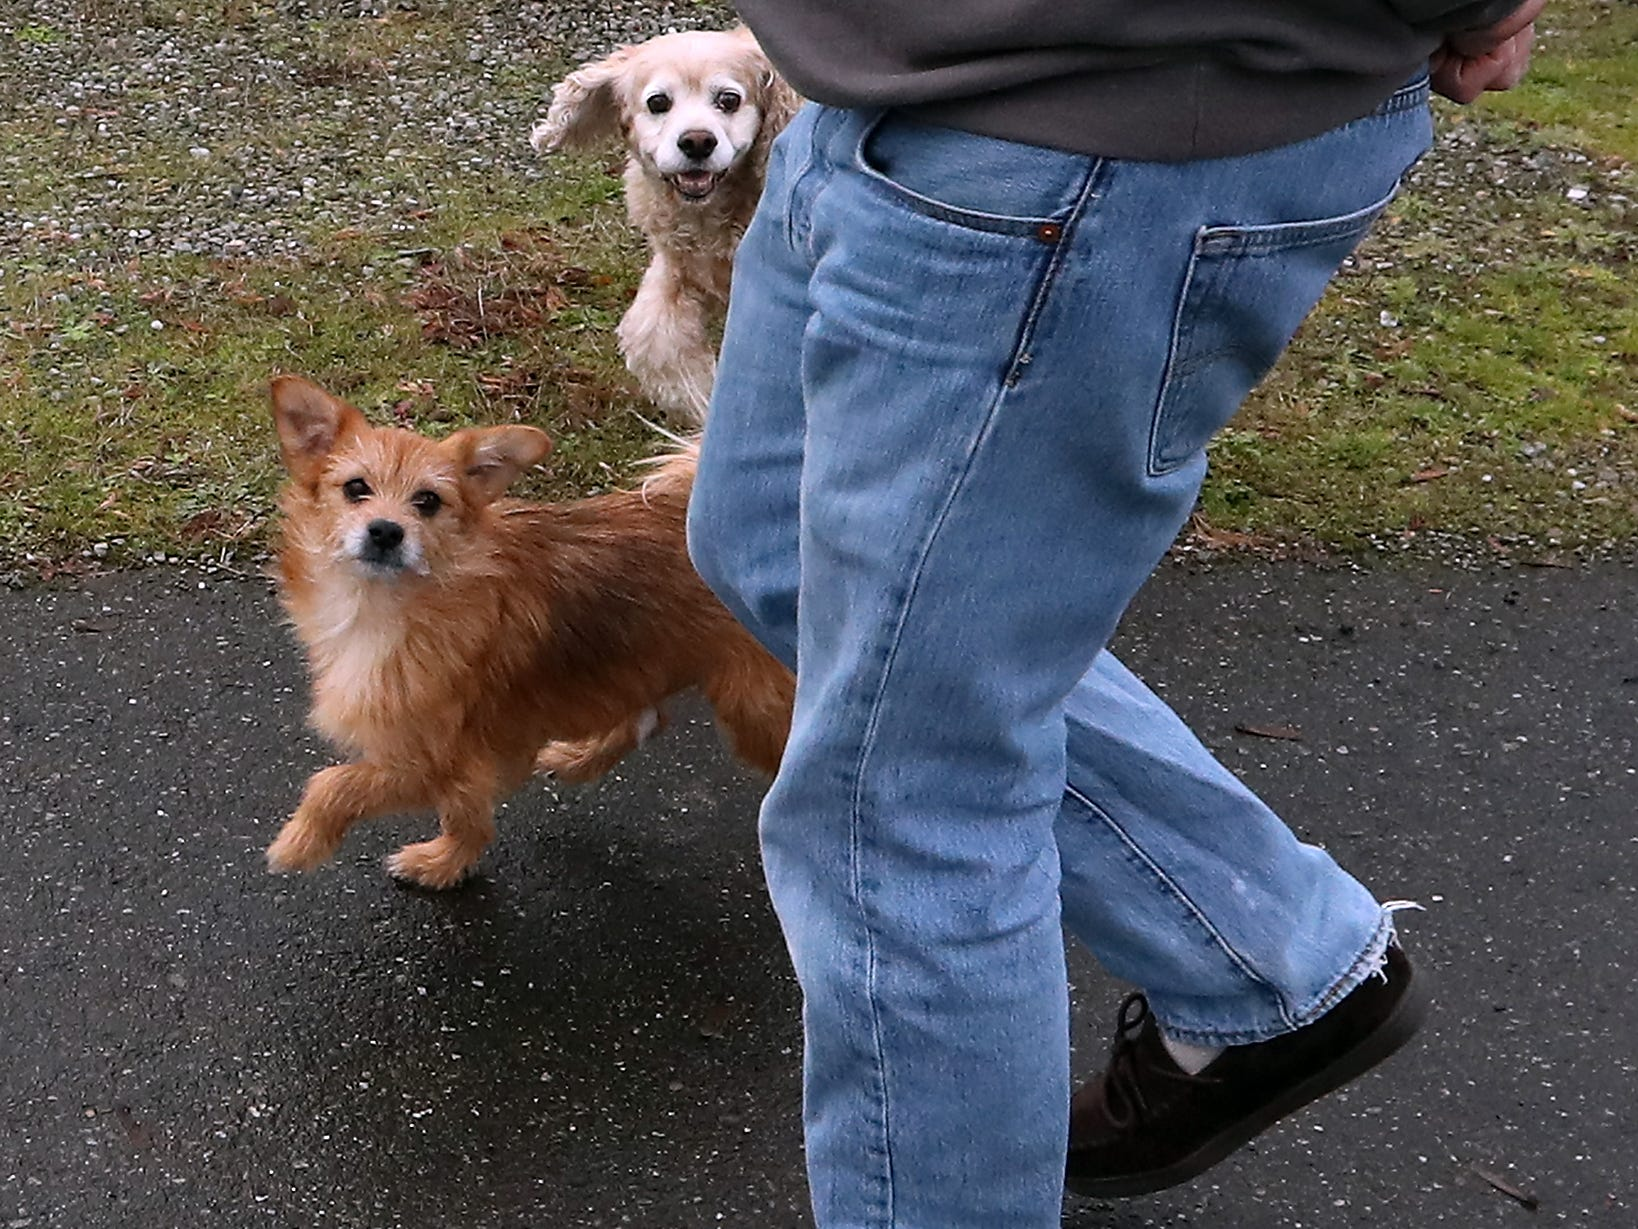 Dogs Spanky and Ladybug run around owner John O'Connor's feet as they head for the mailbox at their Port Orchard home on Thursday, December 20, 2018.